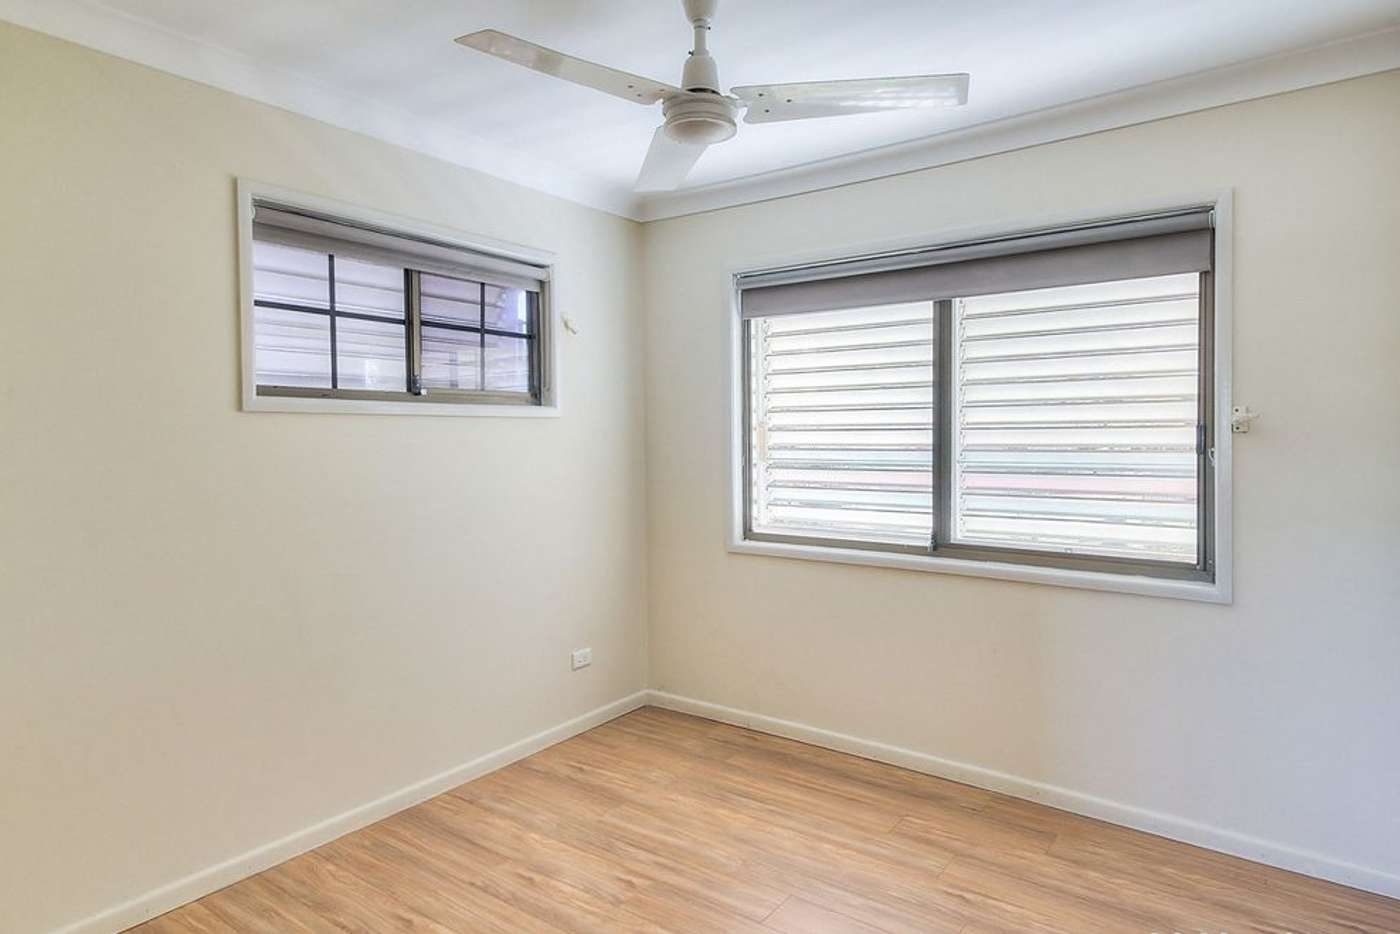 Sixth view of Homely house listing, 5 Devenish Street, Sunnybank QLD 4109